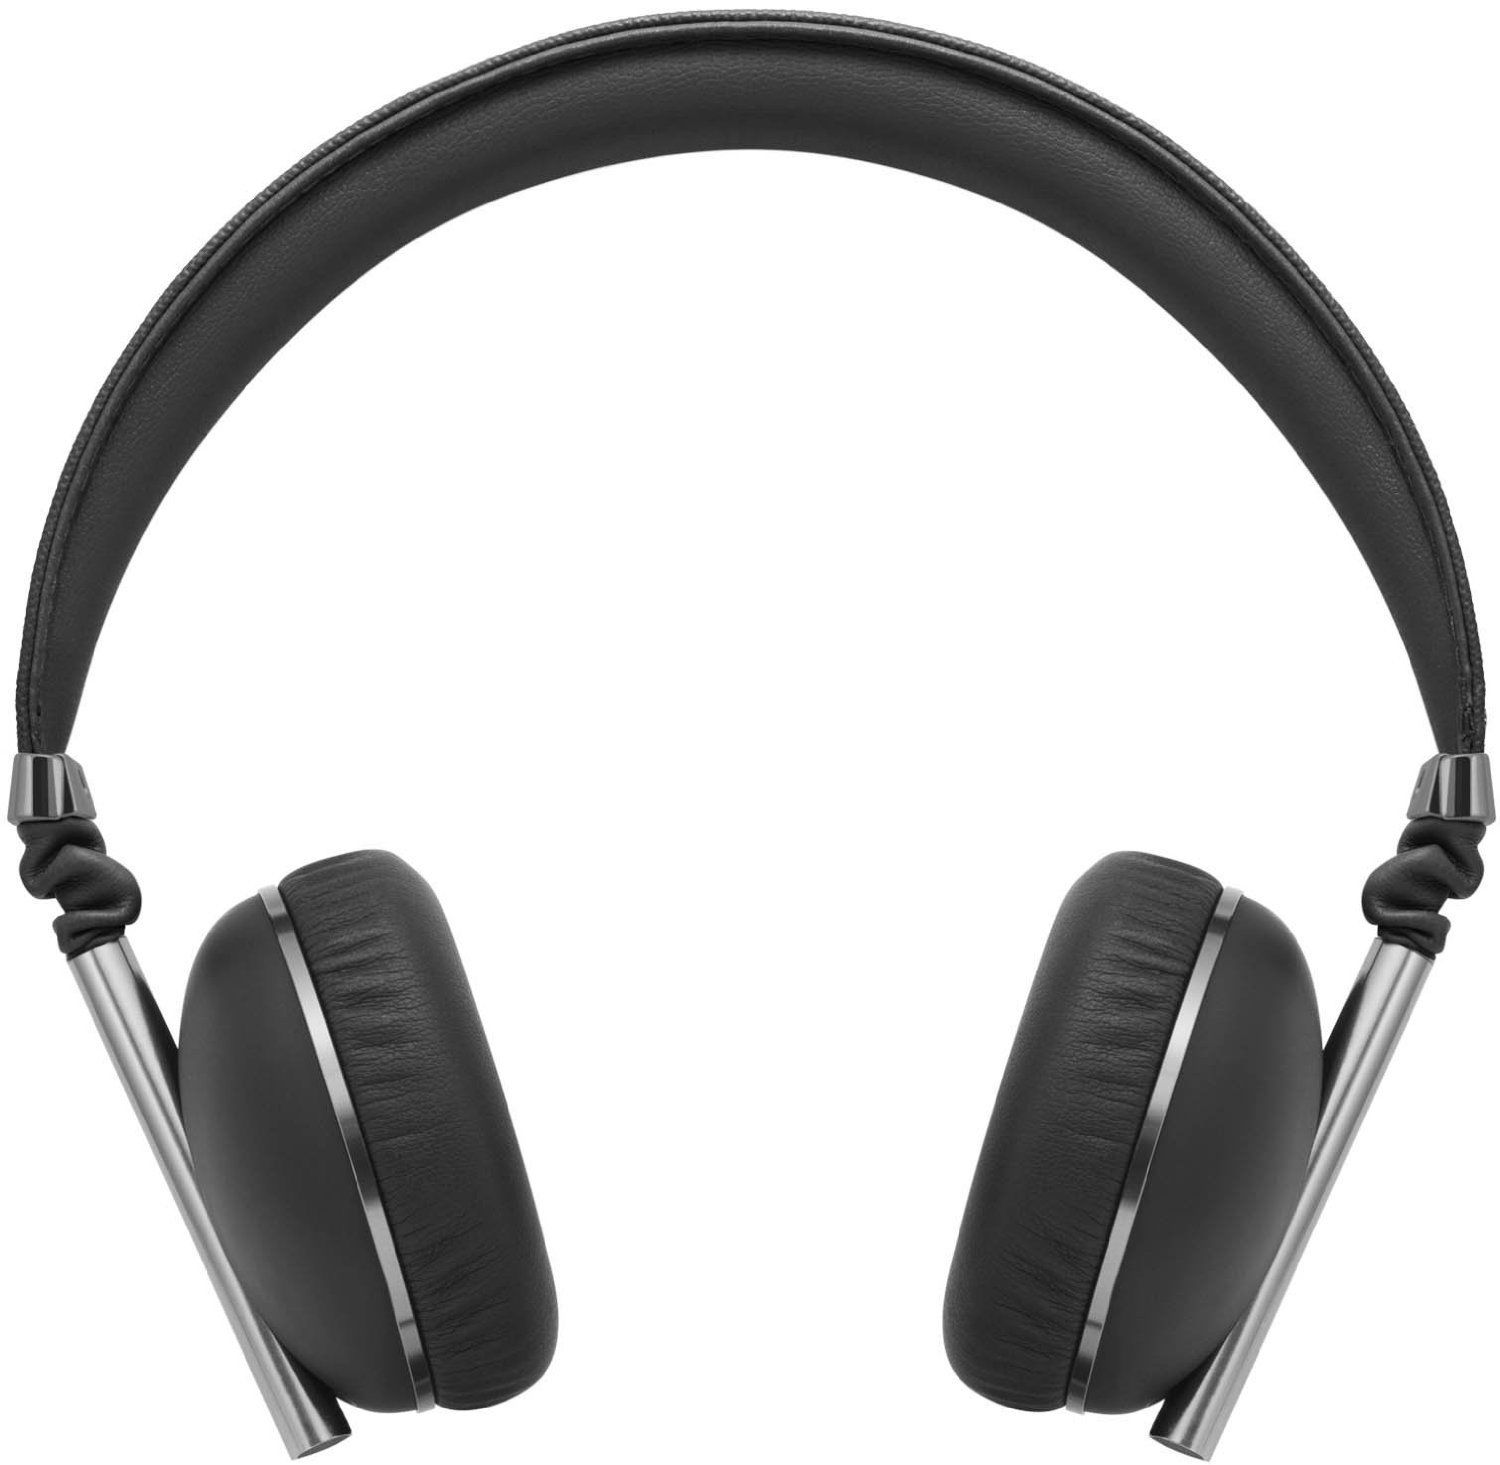 Caeden Linea N°1 On-Ear Headphone for iOS and Android - Convex Carbon & Gunmetal BLACK